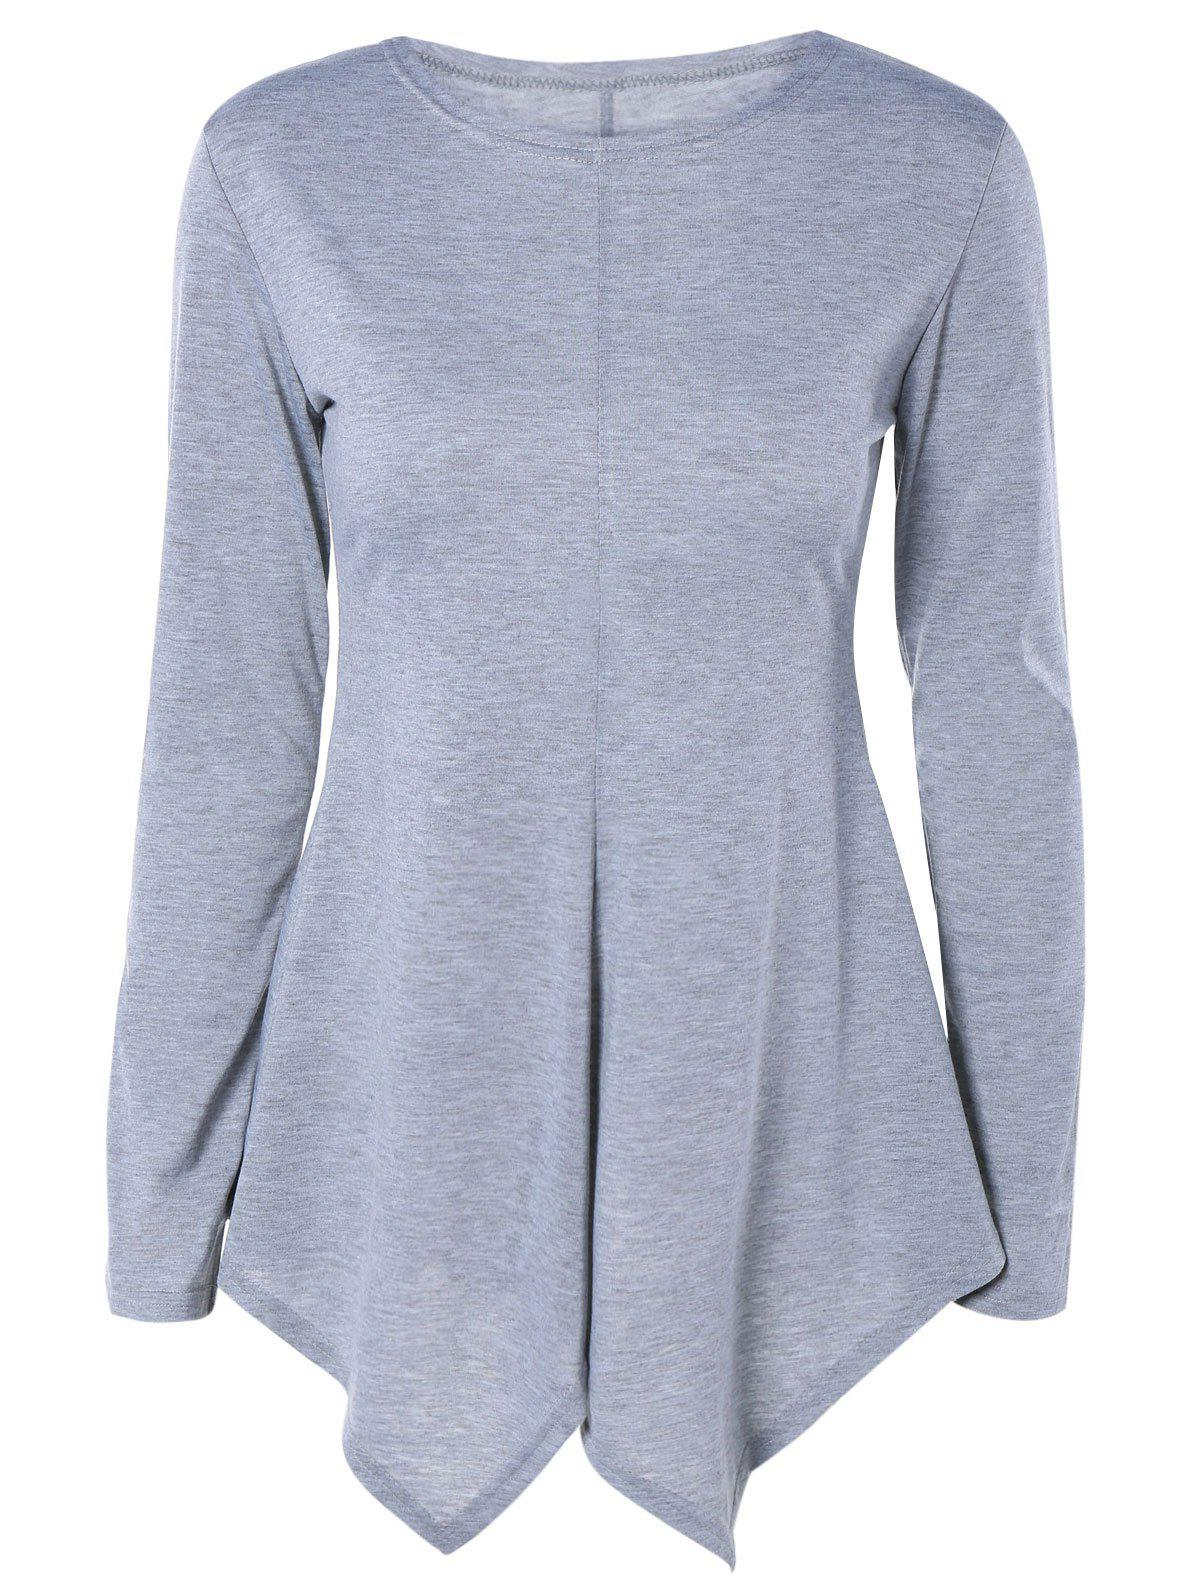 Sweet Pure Color Long Sleeve Asymmetric Tee - LIGHT GRAY XL